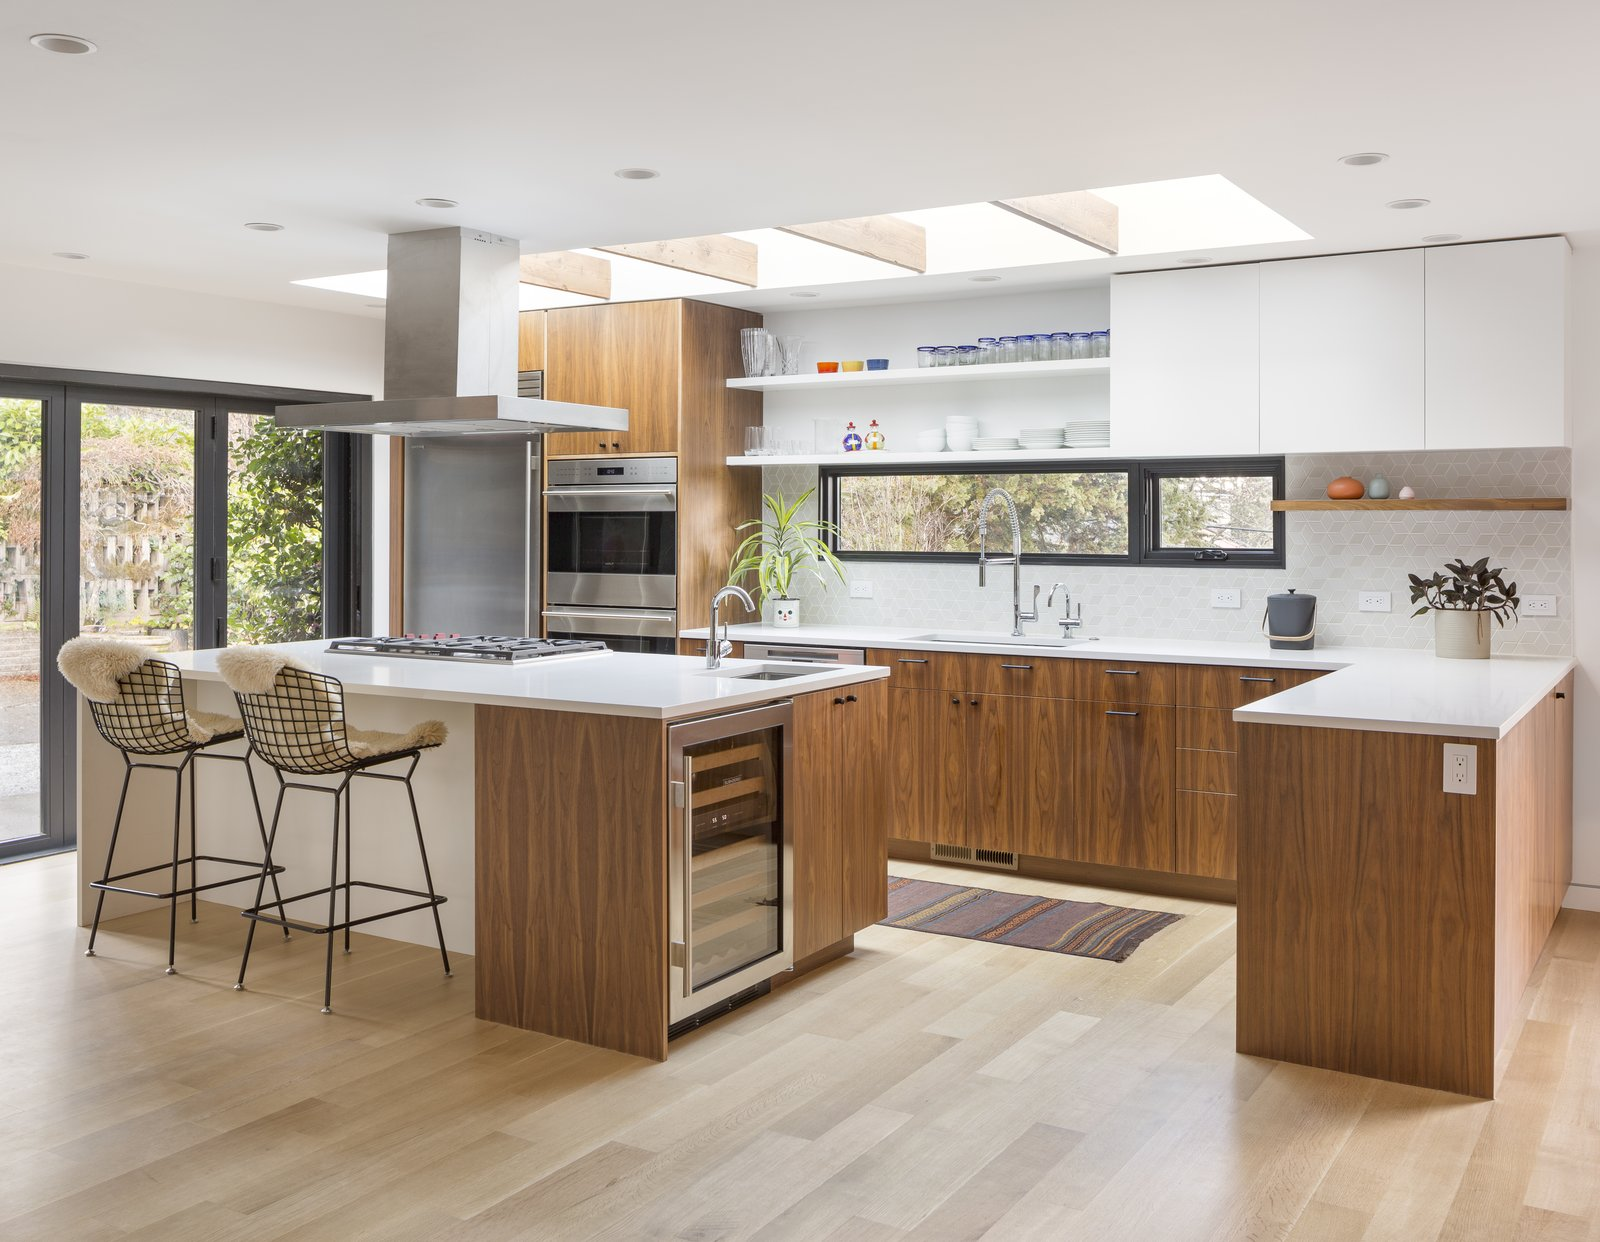 Quimby House Risa Boyer Architects kitchen renovation kitchen